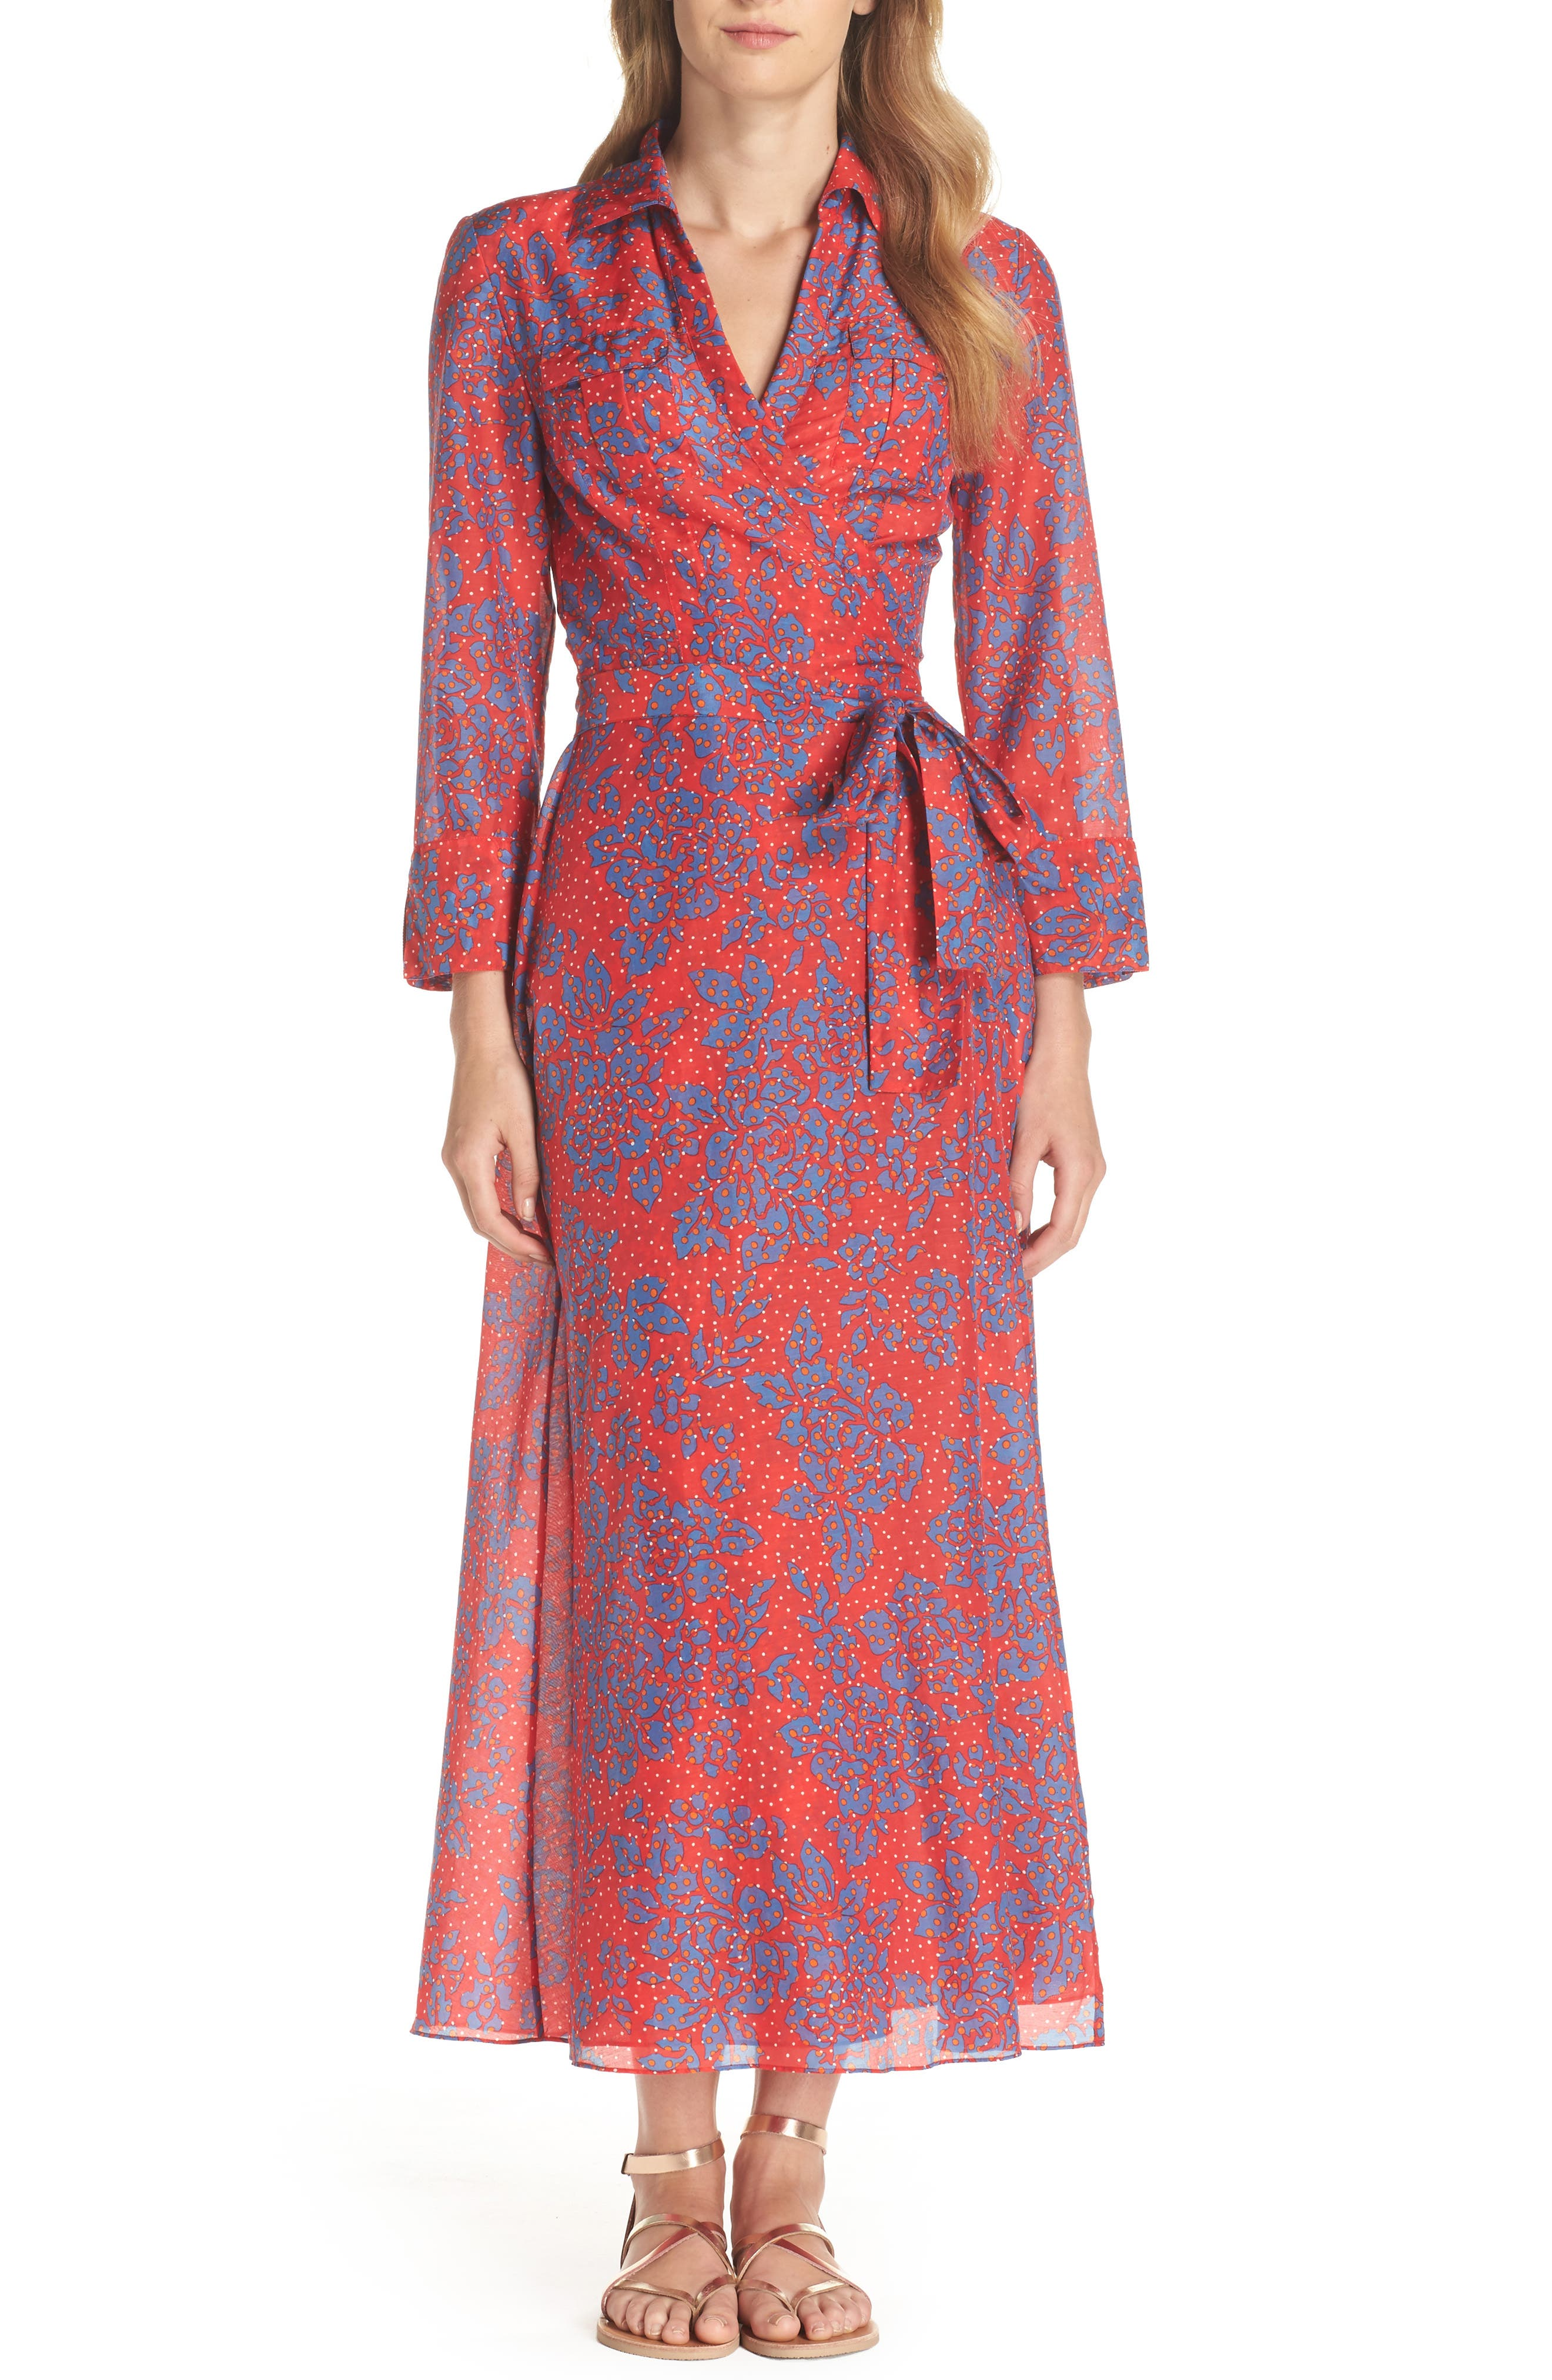 Alternate Image 1 Selected - Diane von Furstenberg Long Cover-Up Wrap Dress